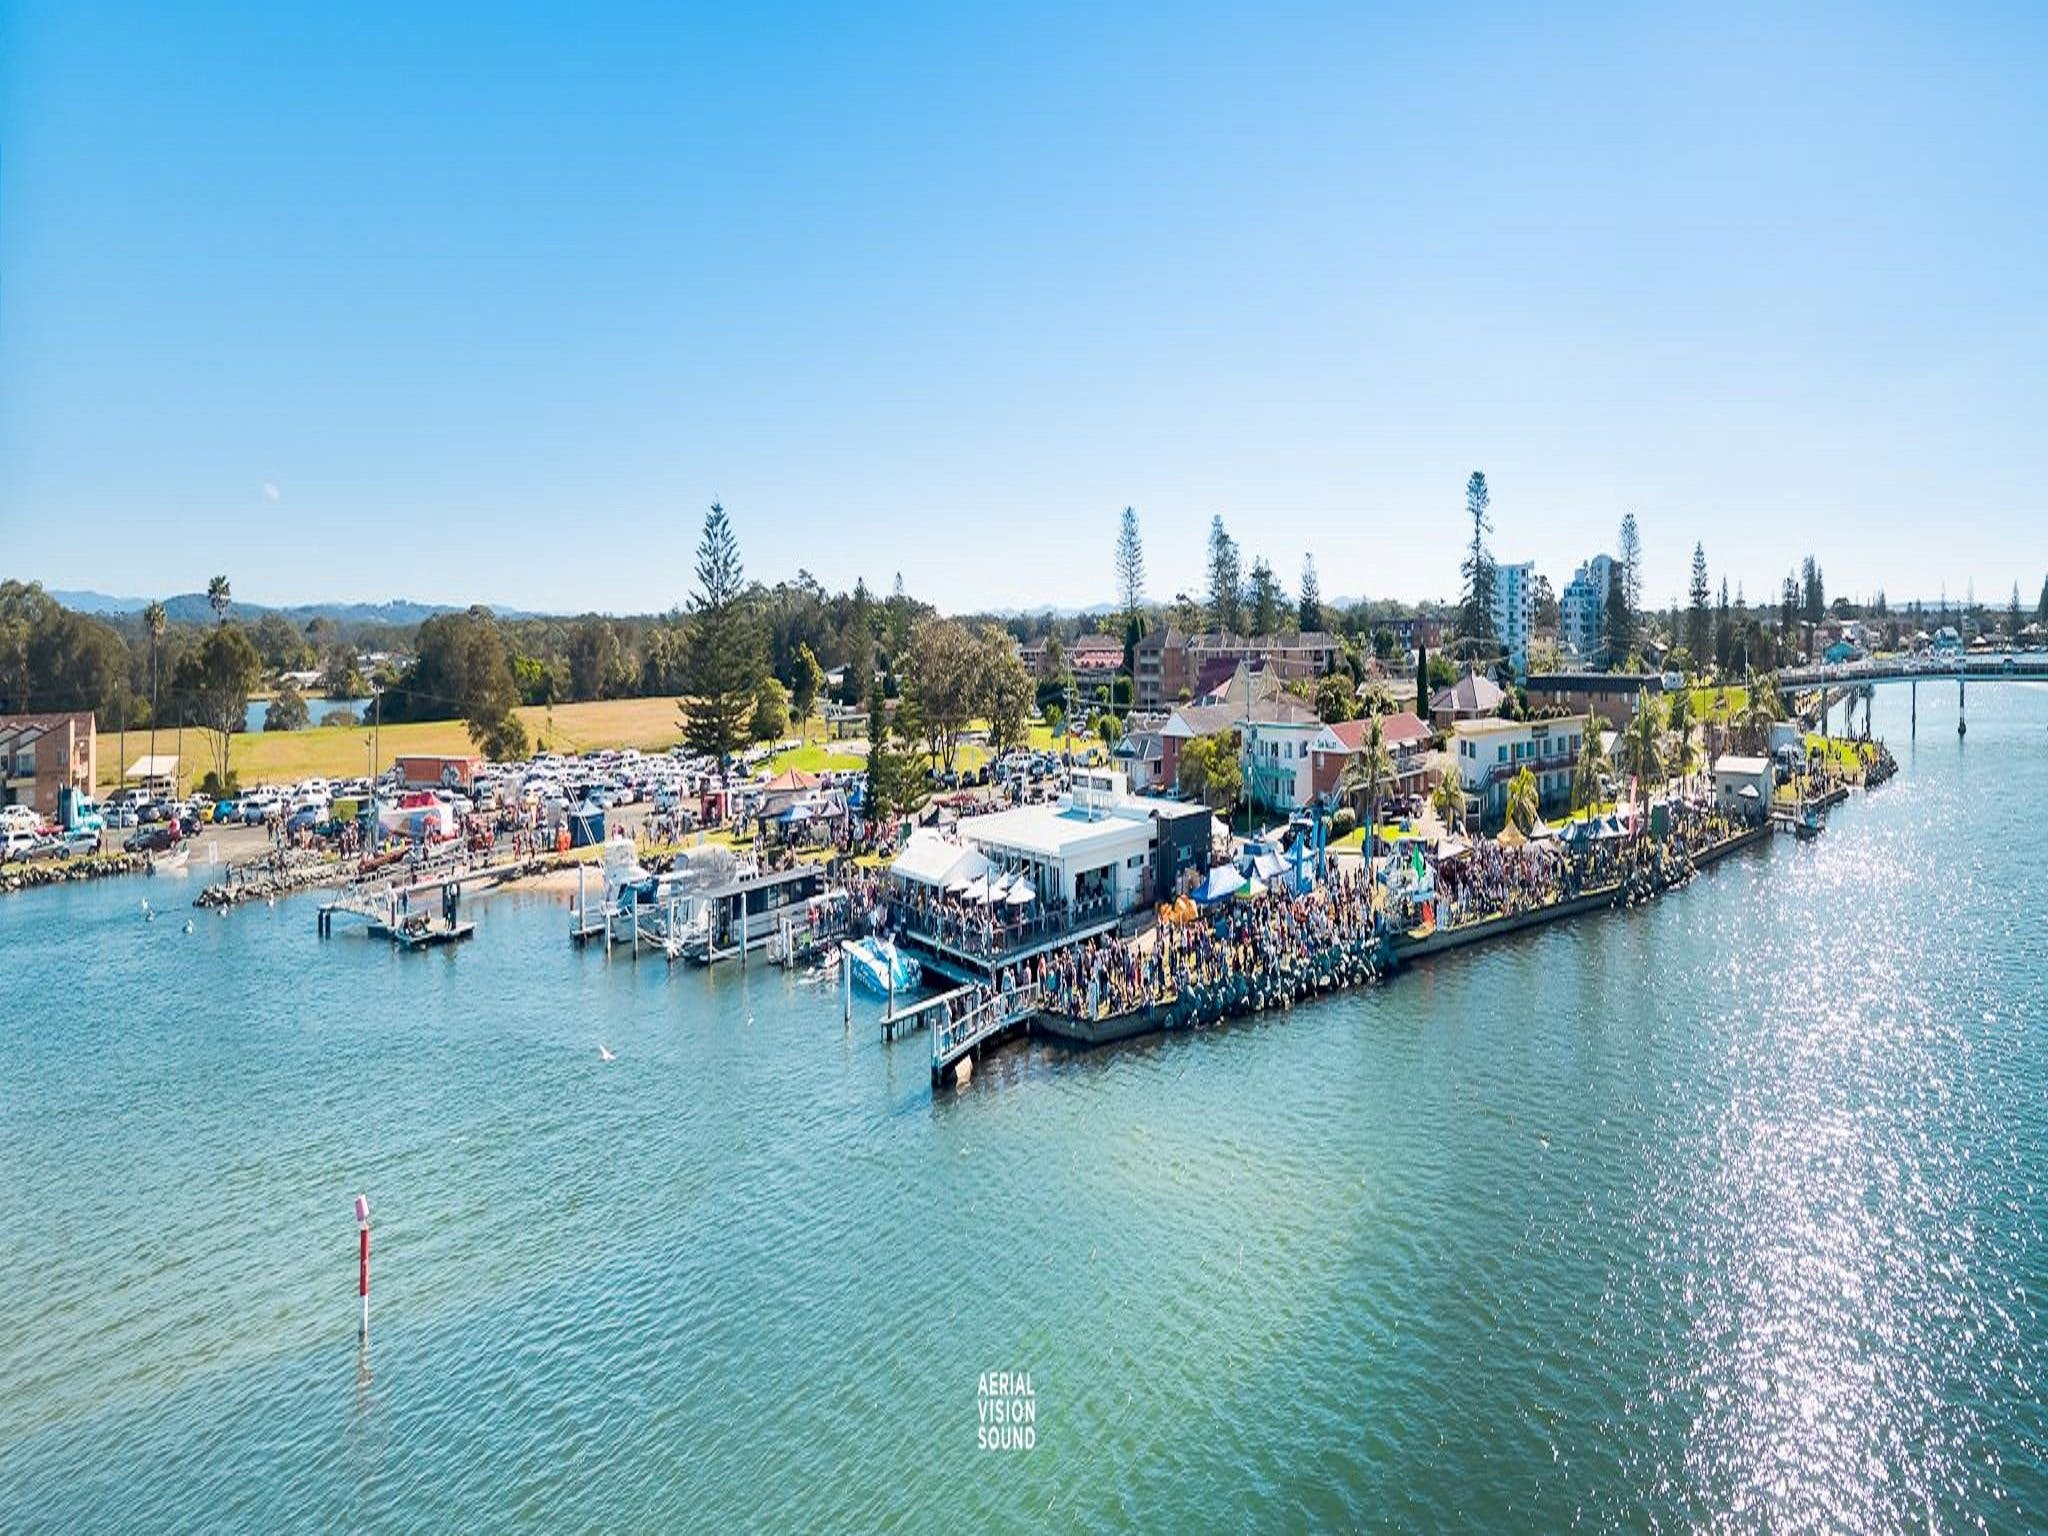 Fred Williams Aquatic Festival - ACT Tourism